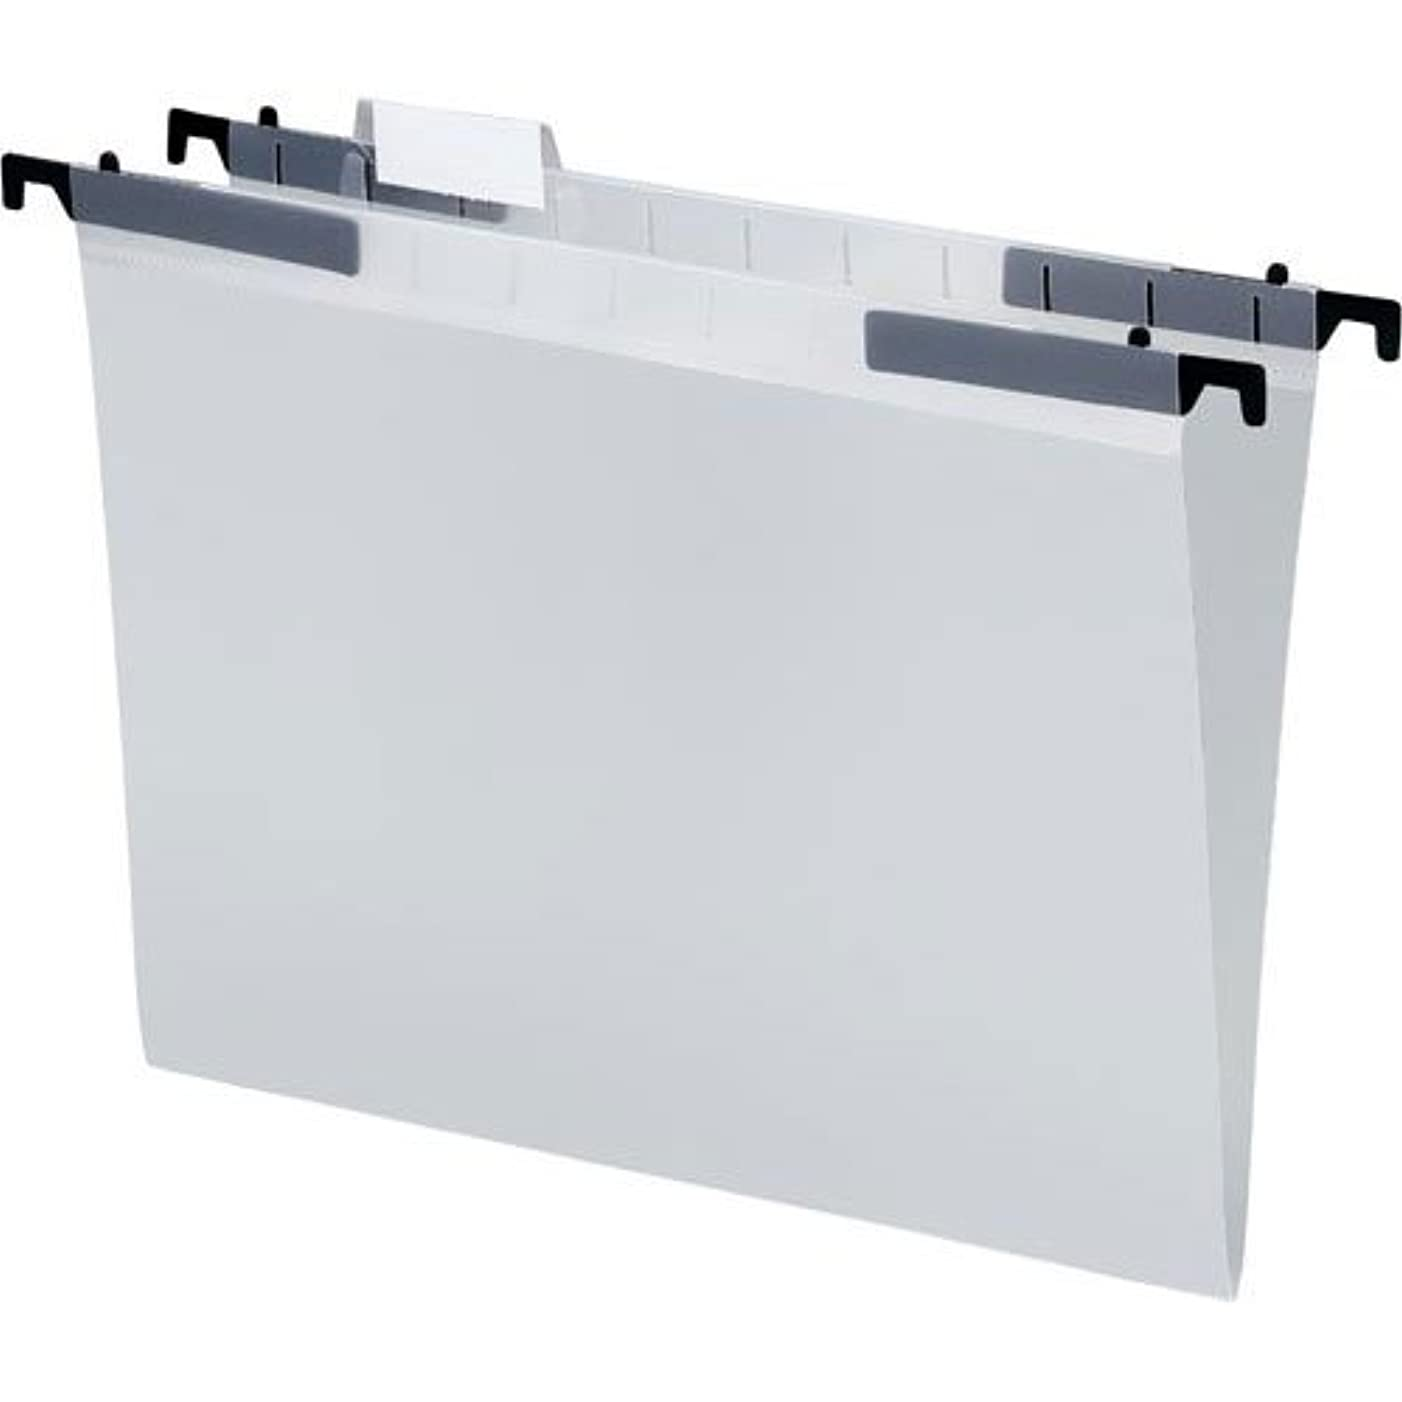 リマーク化合物シングル(Gray.) - Smead File Folder, Reinforced 1/3-Cut Tab, Letter Size, Grey, 100 per Box (12334)